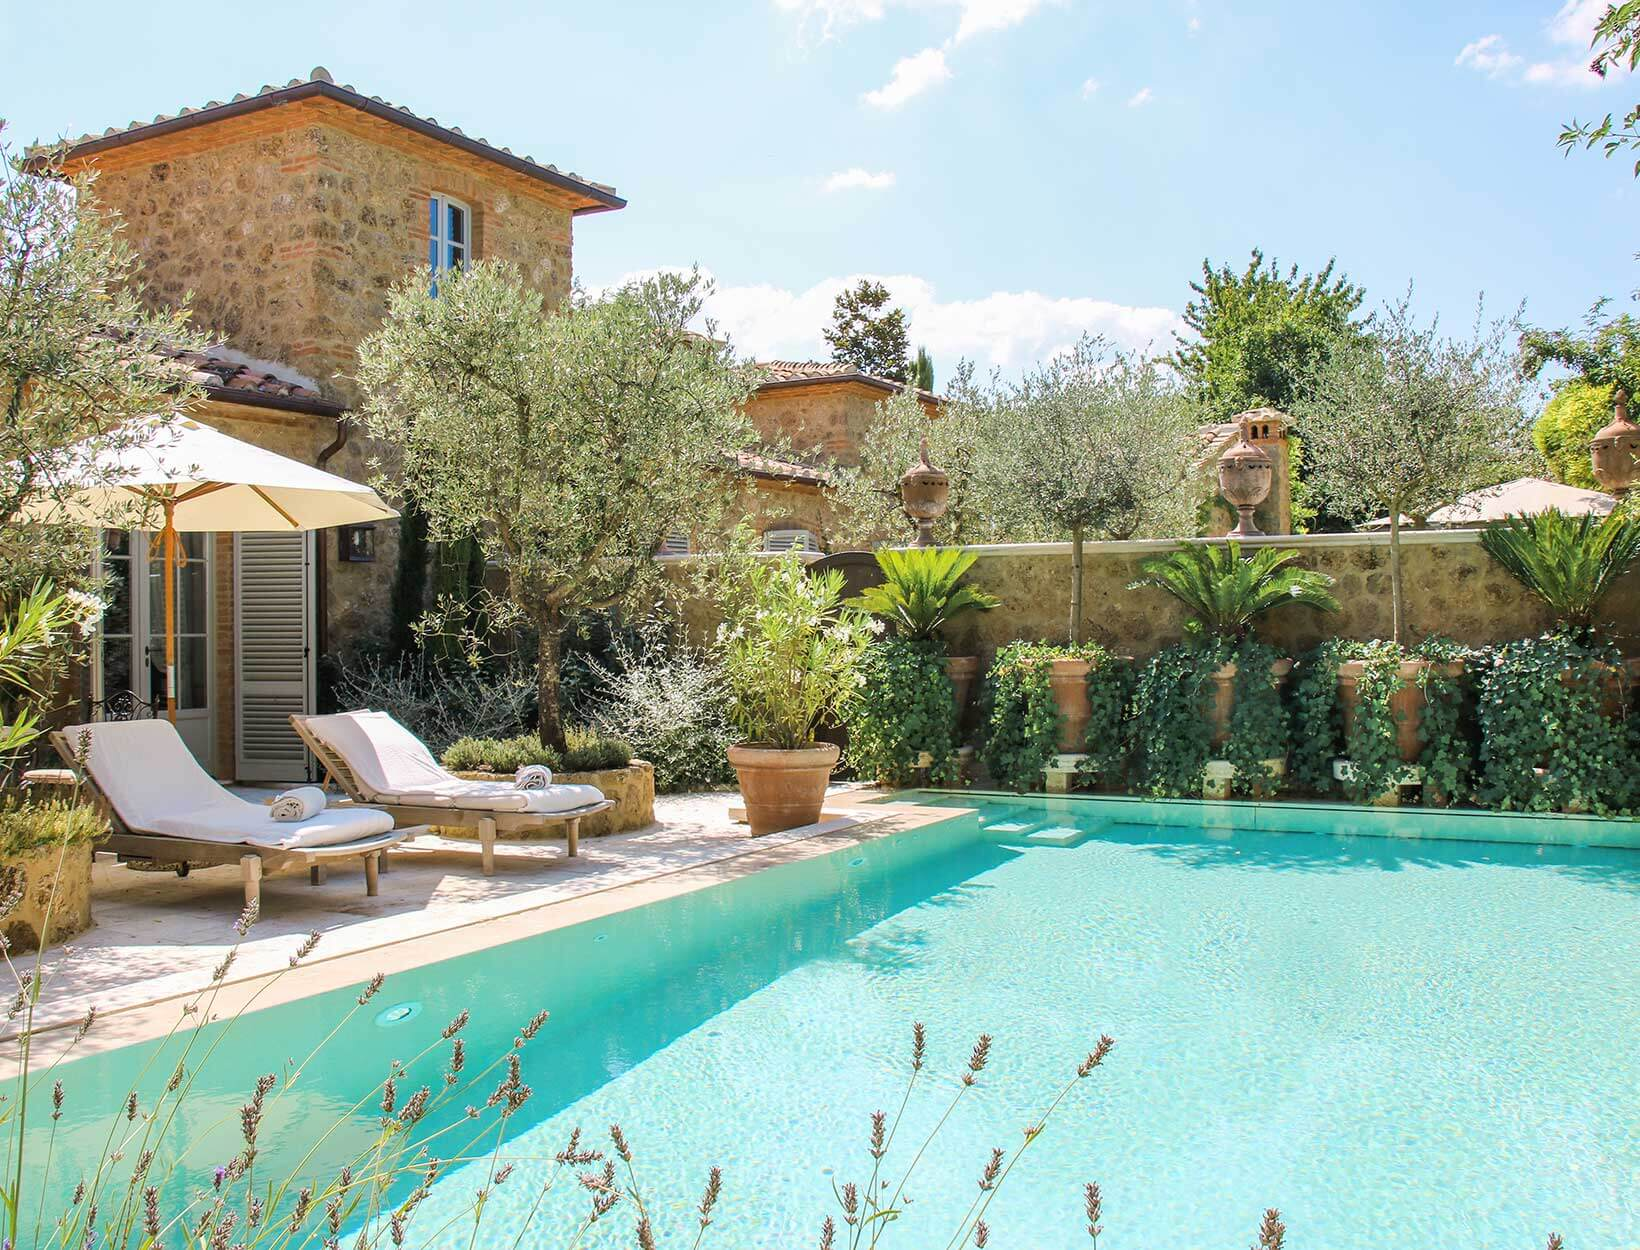 Escape to Tuscany: A Spa on a Yacht, Vineyard Strolls, and Plenty of Pasta